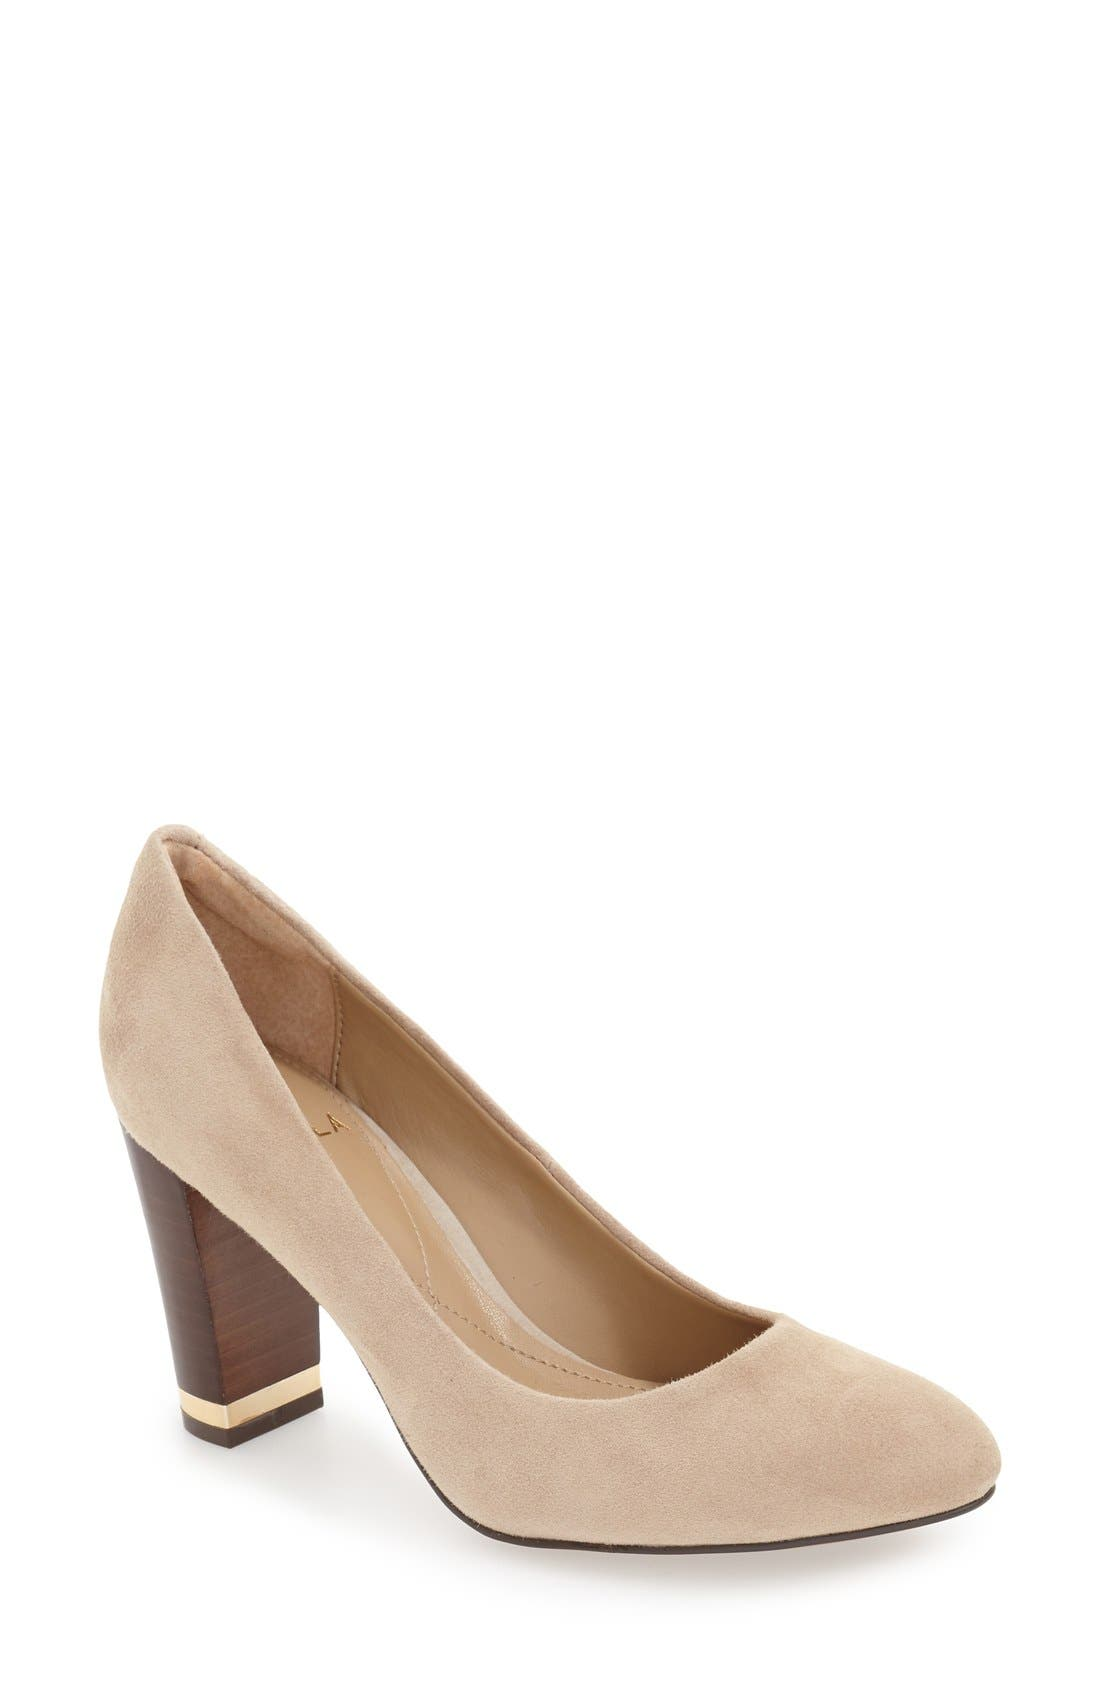 'Eleni II' Block Heel Pump,                             Main thumbnail 3, color,